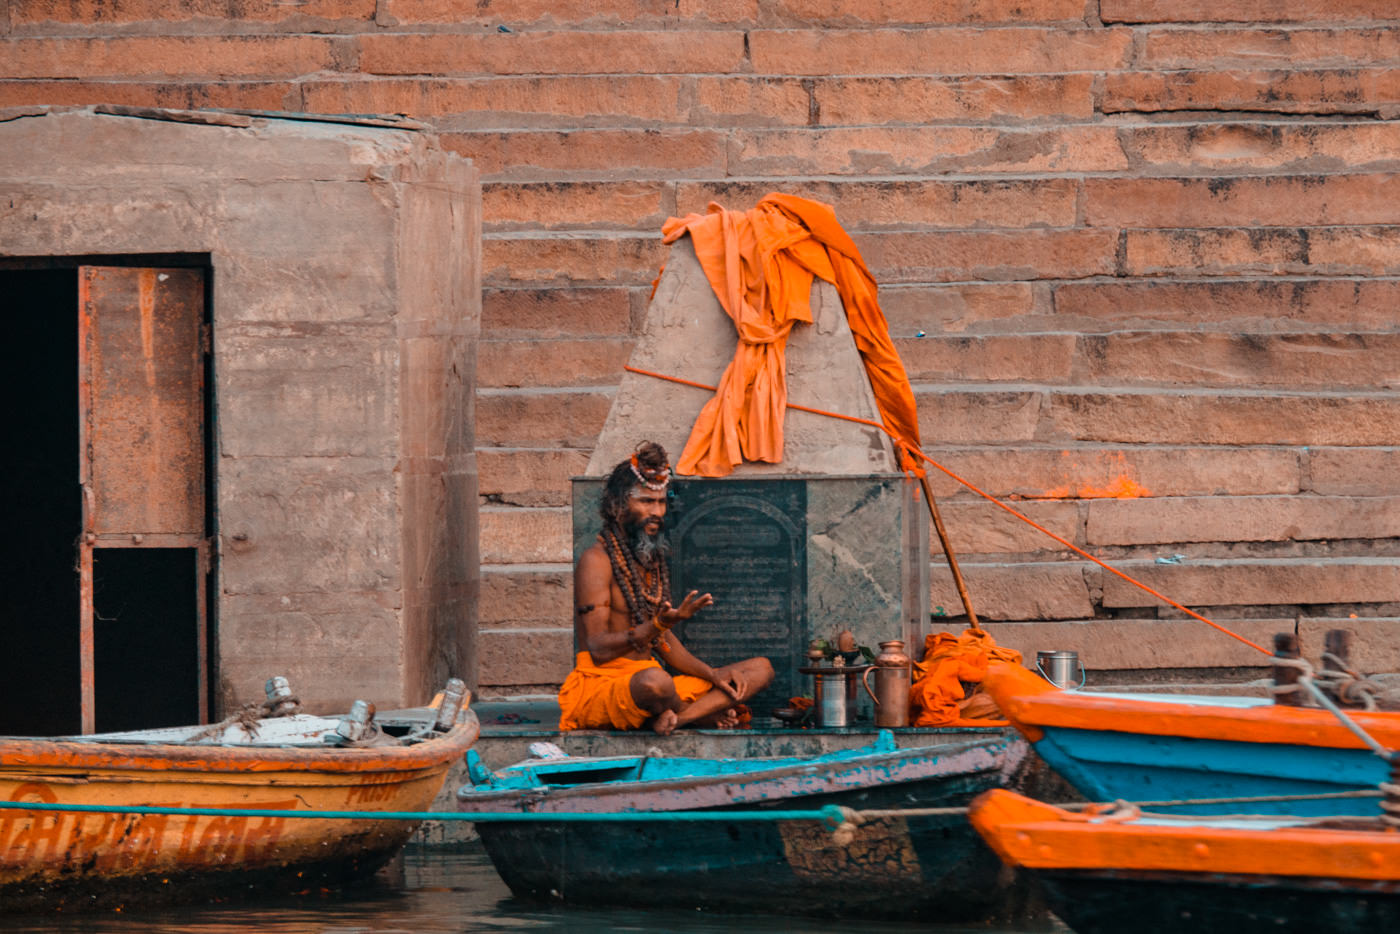 Sadhu am Ufer des Ganges in Varanasi